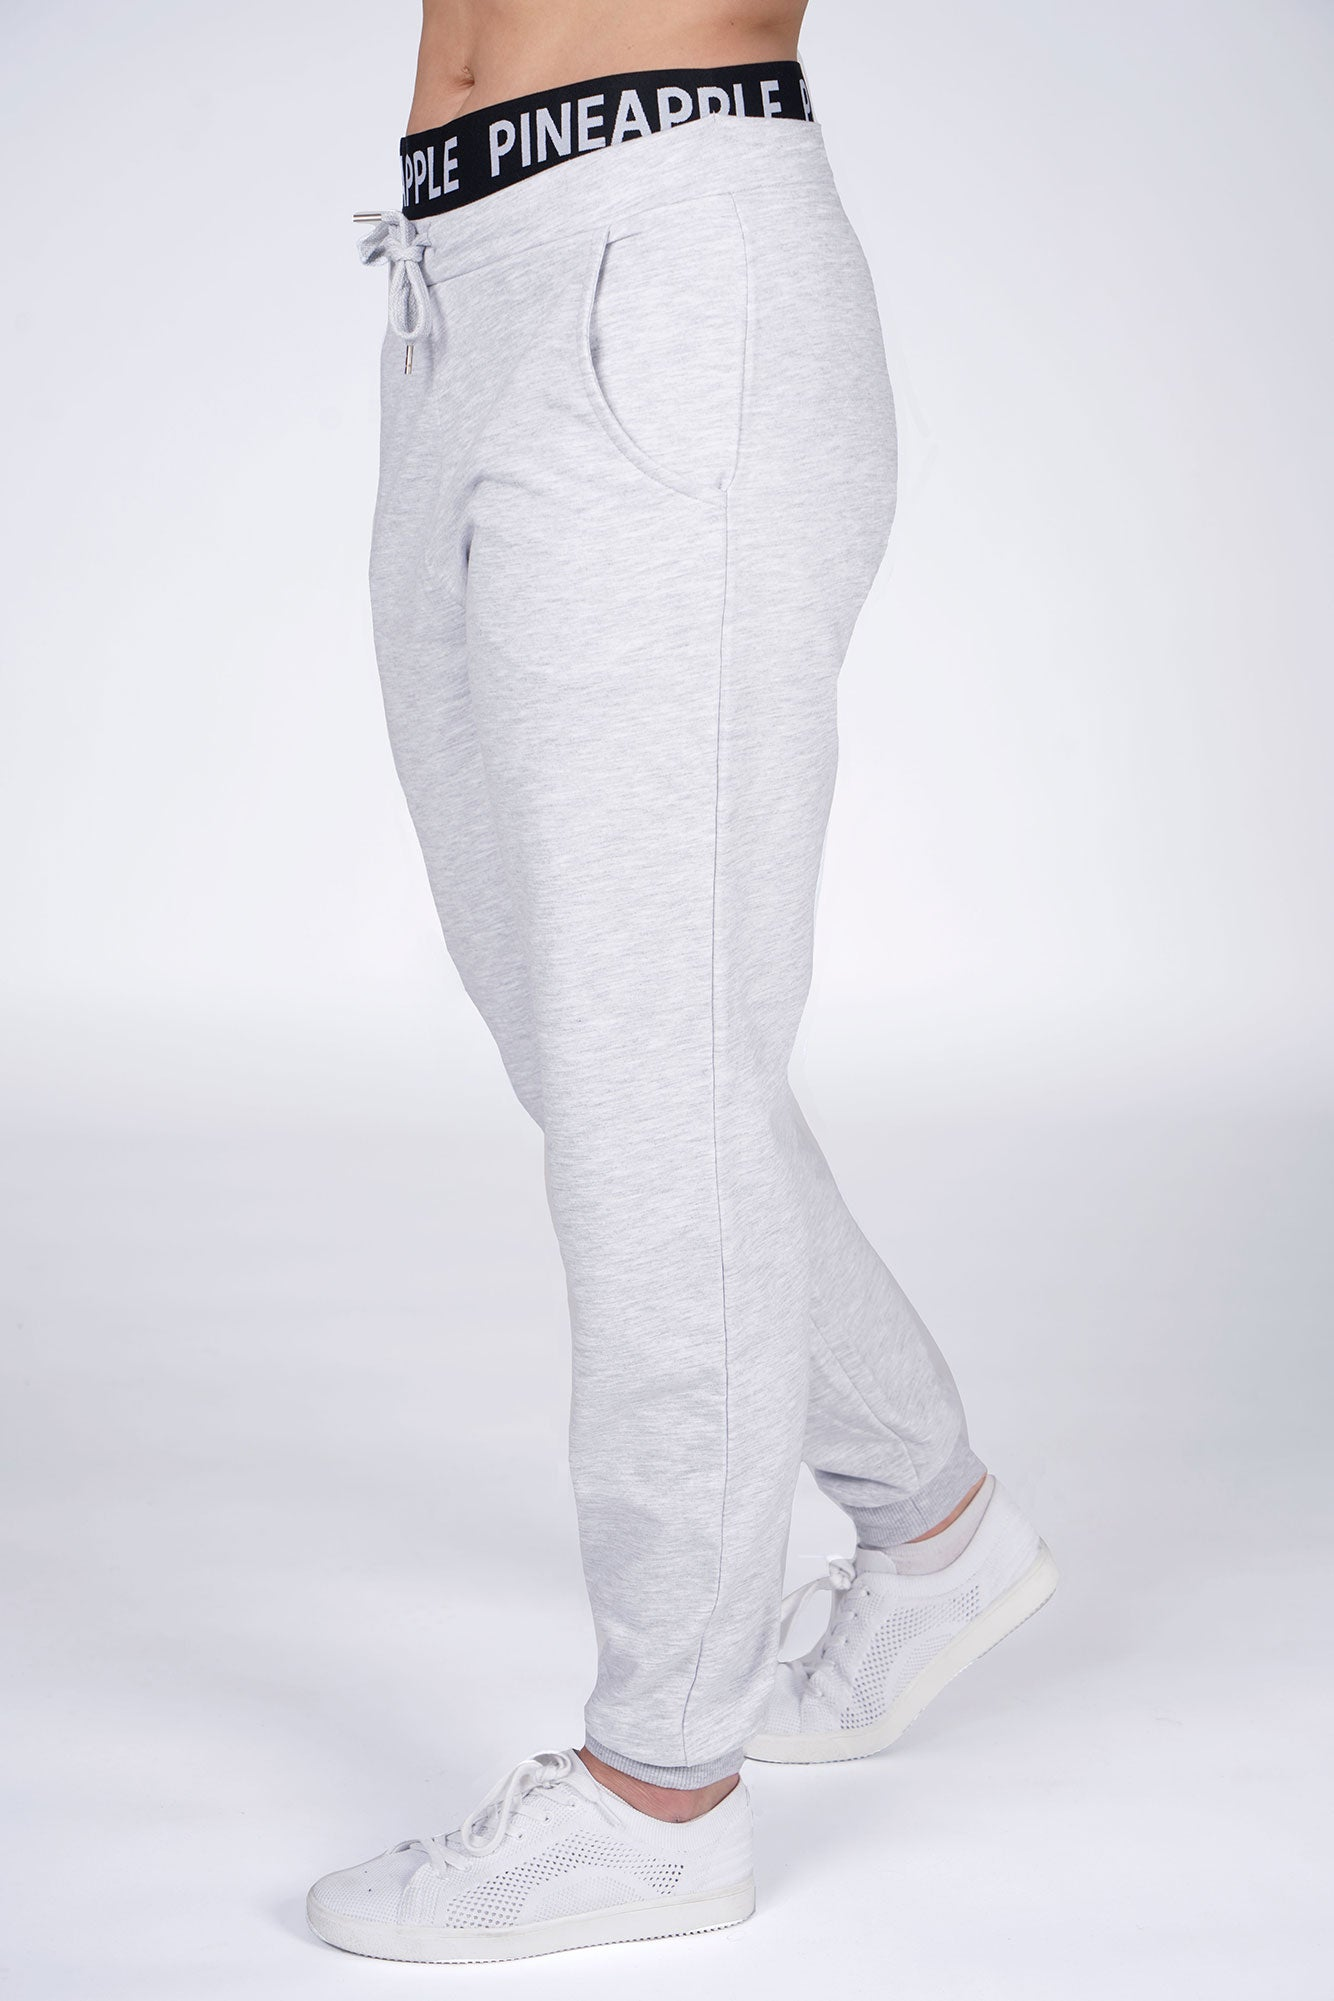 Woman wearing Pineapple Grey Double Band Joggers